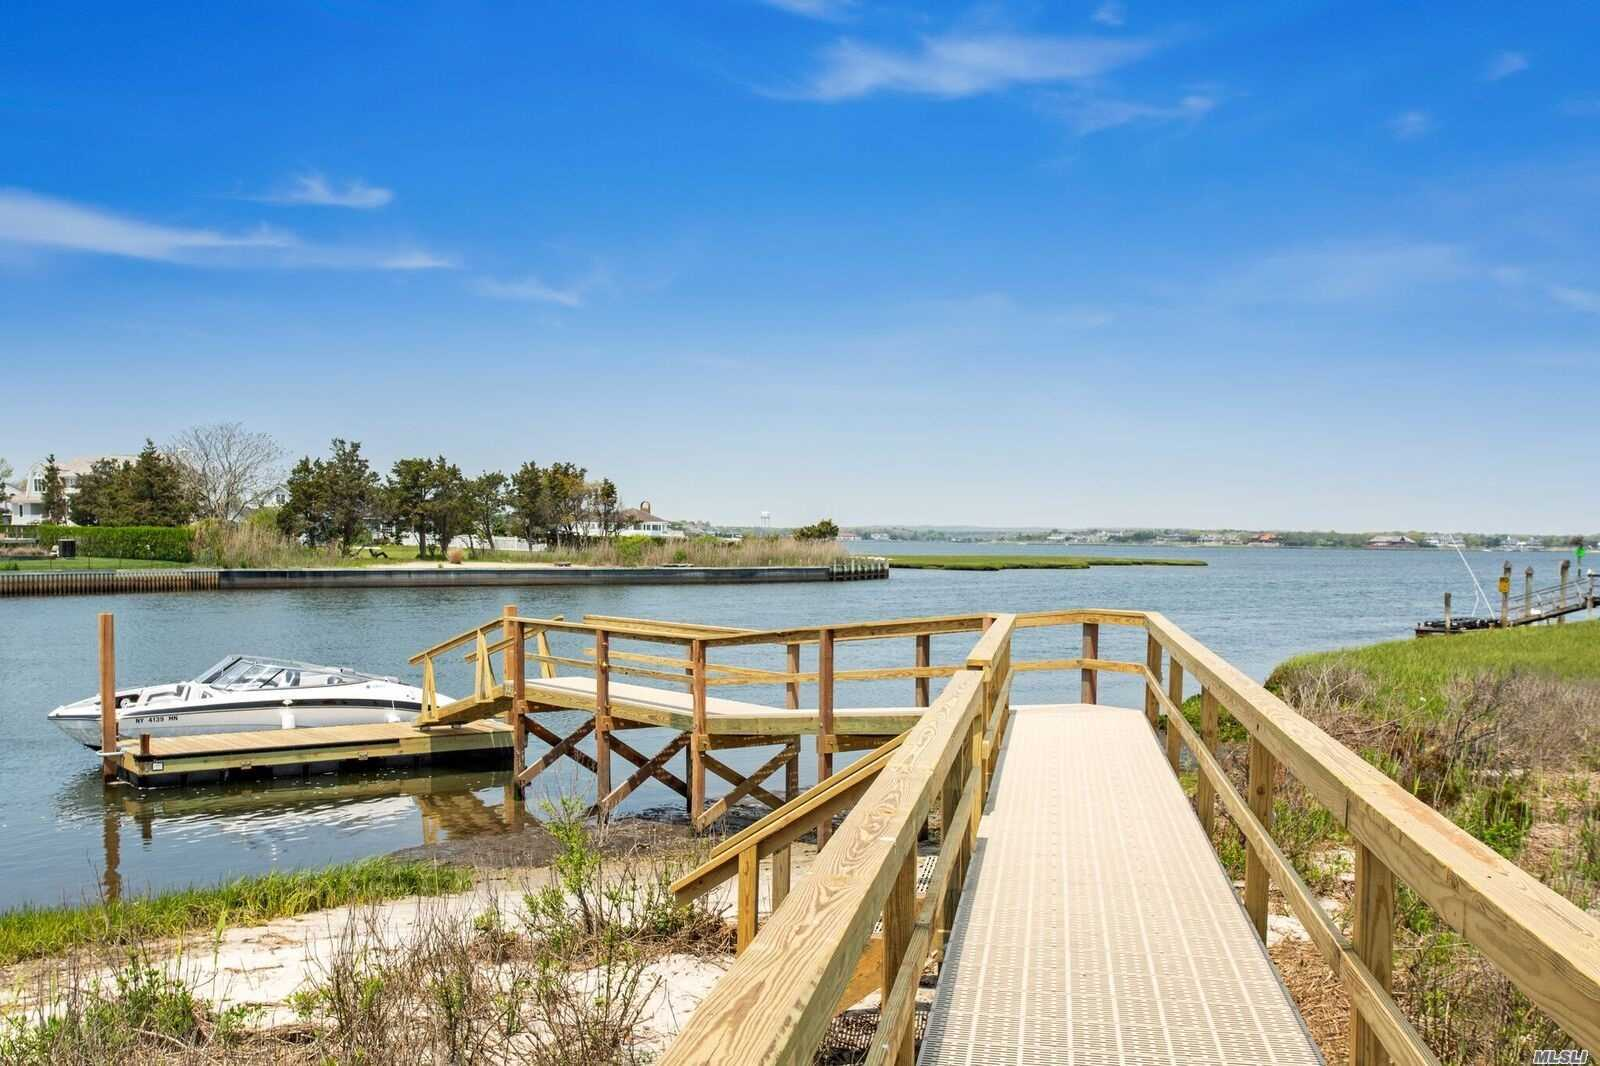 Spectacular 6, 000 Sqft New Construction In Westhampton Beach On Pristine 3 Acre Bayfront Parcel On World Renowned Dune Rd With Deepwater Dock, Saltwater Heated Gunite Pool And Cabana. Complete With 7Bed/7Bath, 2 Car Garage, And Deeded Oceanfront Access Just Feet From Your Front Door!! Enjoy A Summer Lifestyle Like No Other Making This The Perfect Hamptons Summer Getaway!!